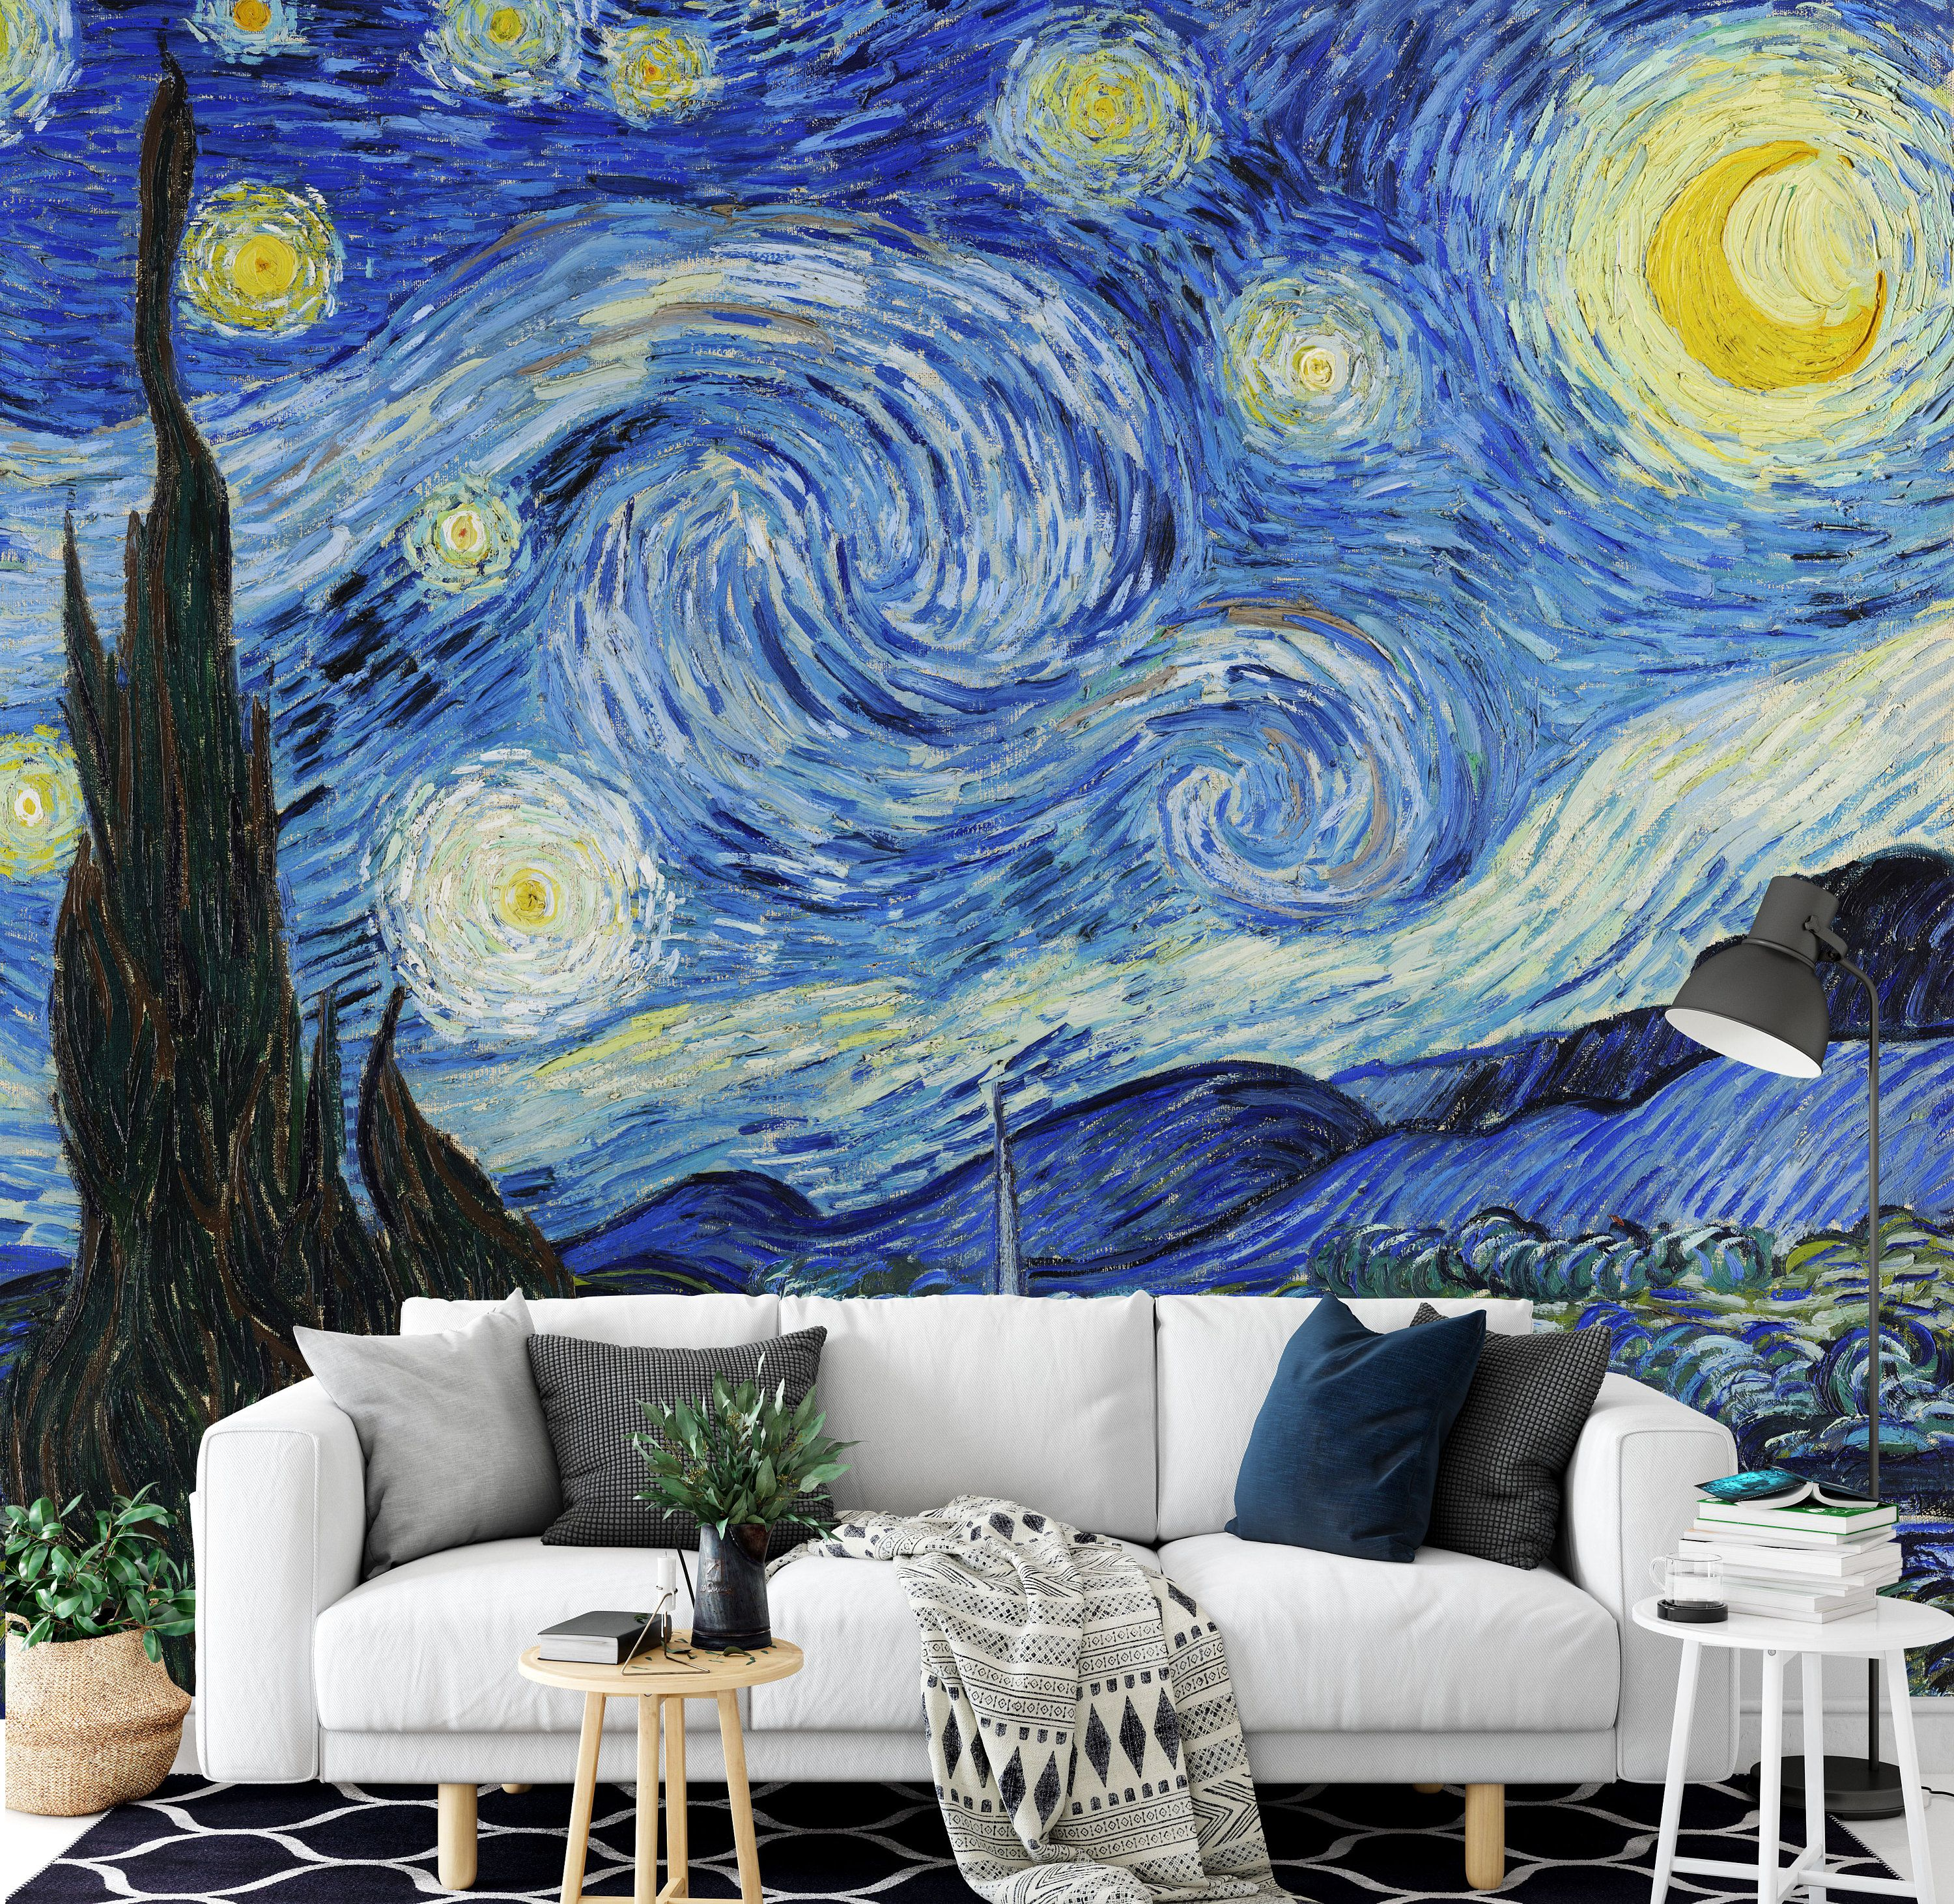 The Starry Night By Vincent Van Gogh Wall Mural Forest Etsy Starry Night Van Gogh Starry Night Wallpaper Van Gogh Wallpaper